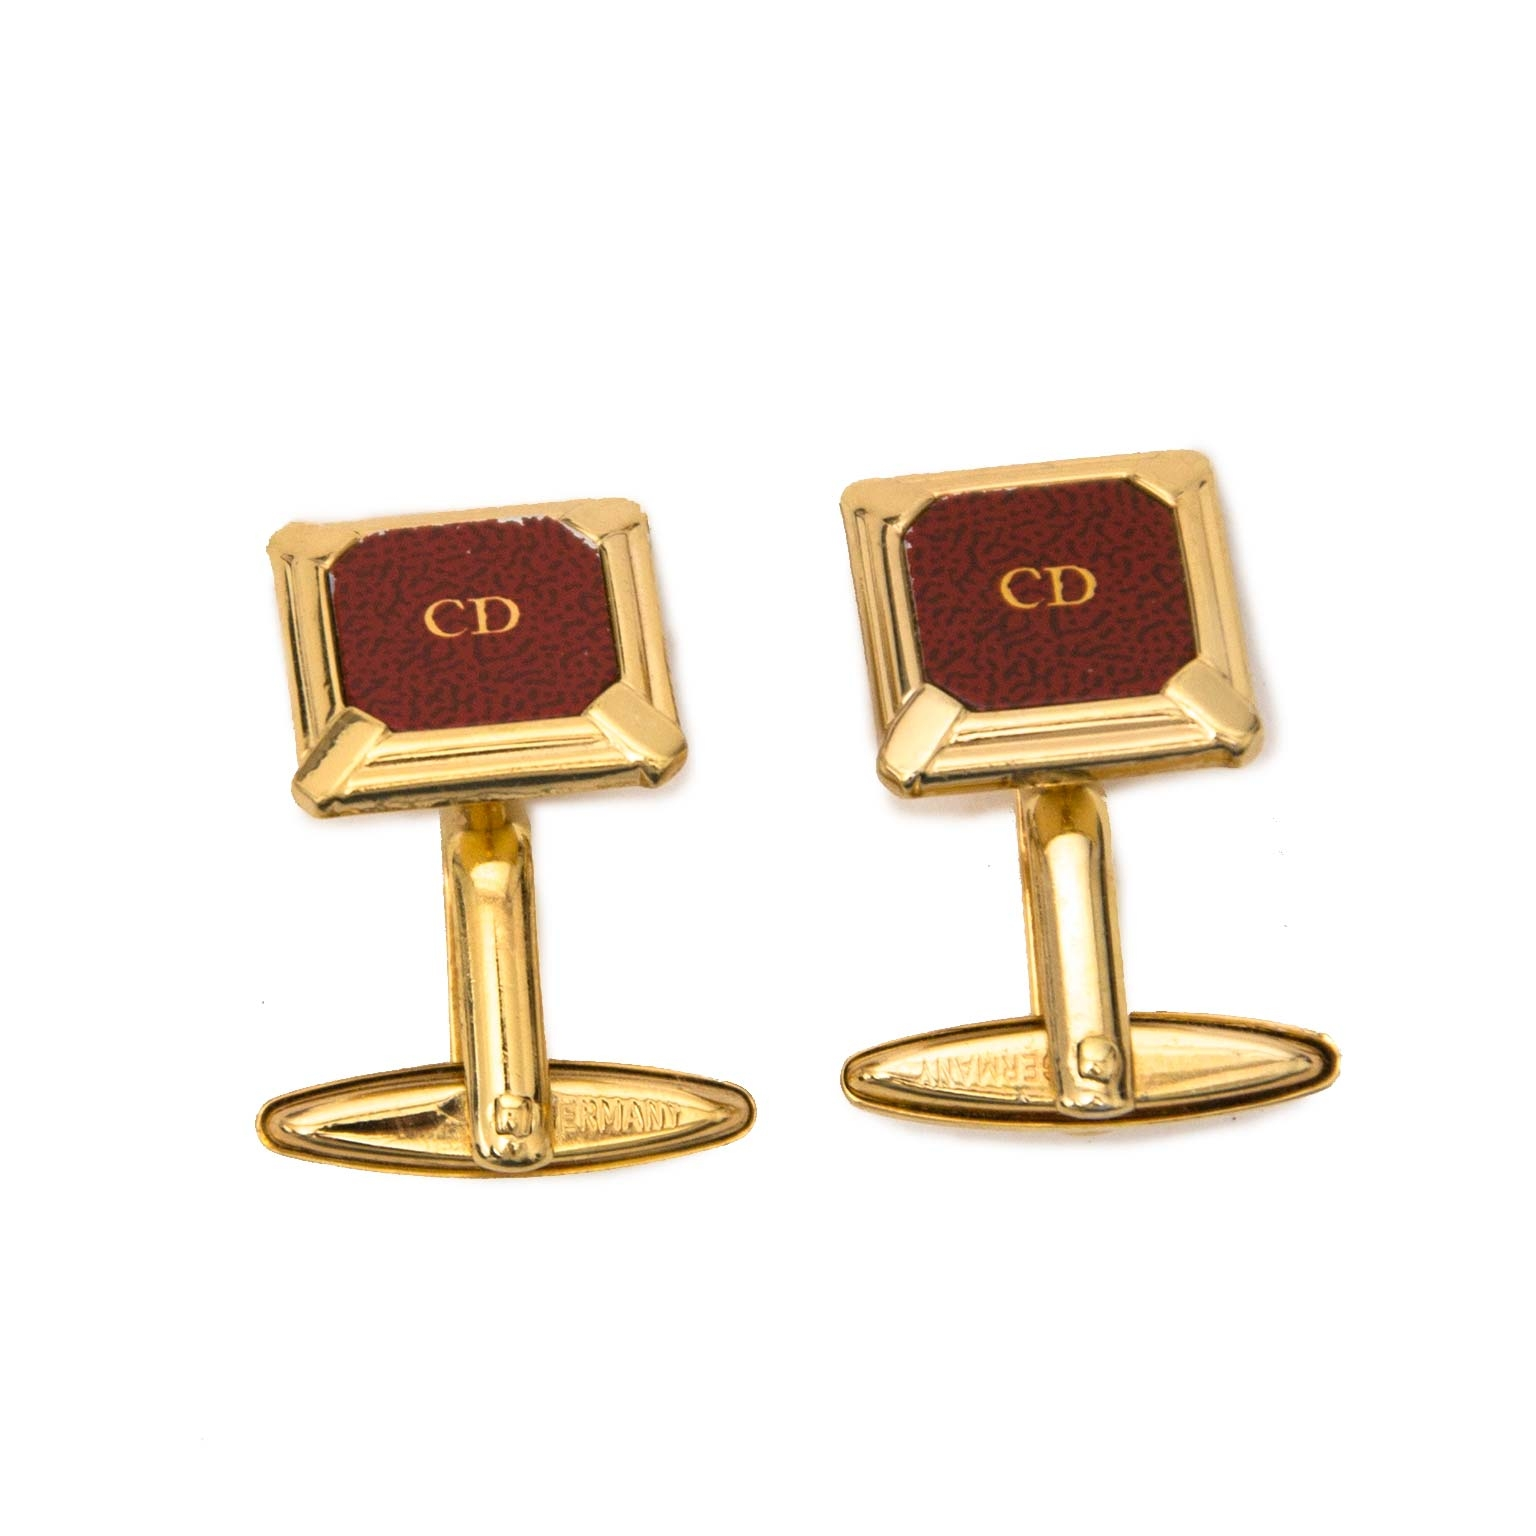 Christian Dior Monsieur Vintage Gold & Rust Cufflinks Buy authentic designer Dior secondhand cufflinks at Labellov at the best price. Safe and secure shopping. Koop tweedehands authentieke Dior manchetknopen bij designer webwinkel labellov.